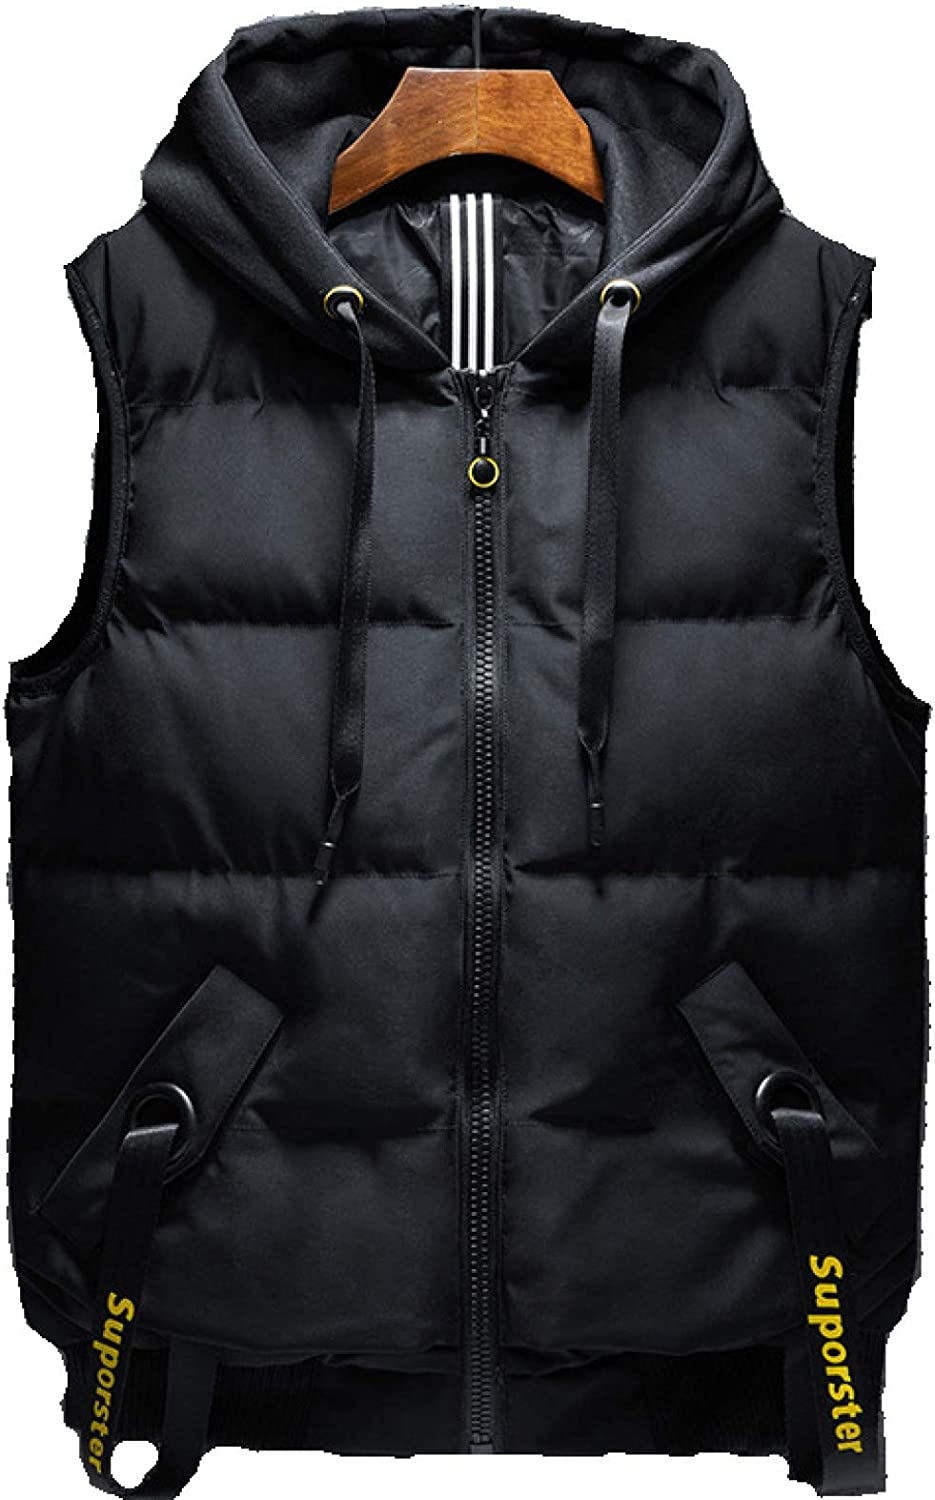 Men's Stand Collar Padded Down Vest Coats Puffer Sleeveless Outfit Zipper Pocket Outdoor Casual Waistcoat Jacket